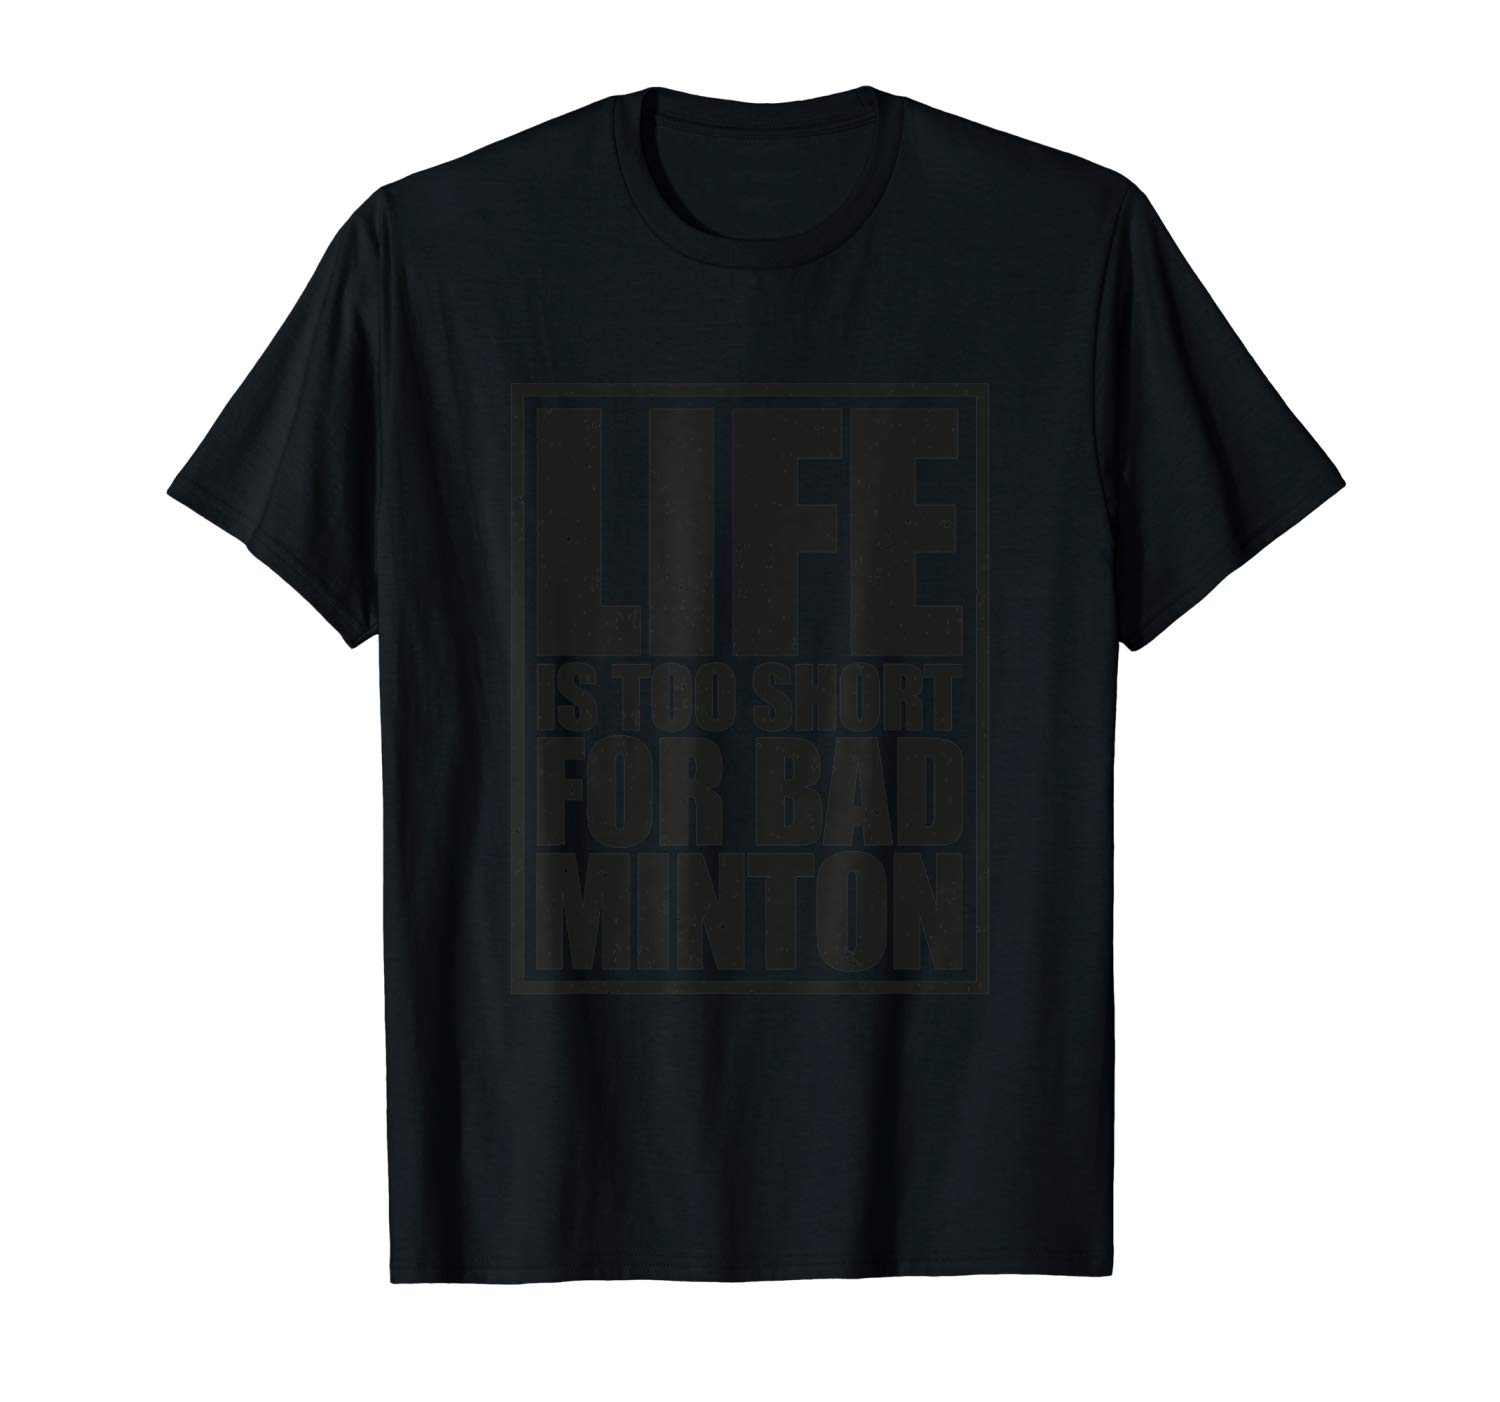 T-Shirt: Life is too short for badminton t-shirt